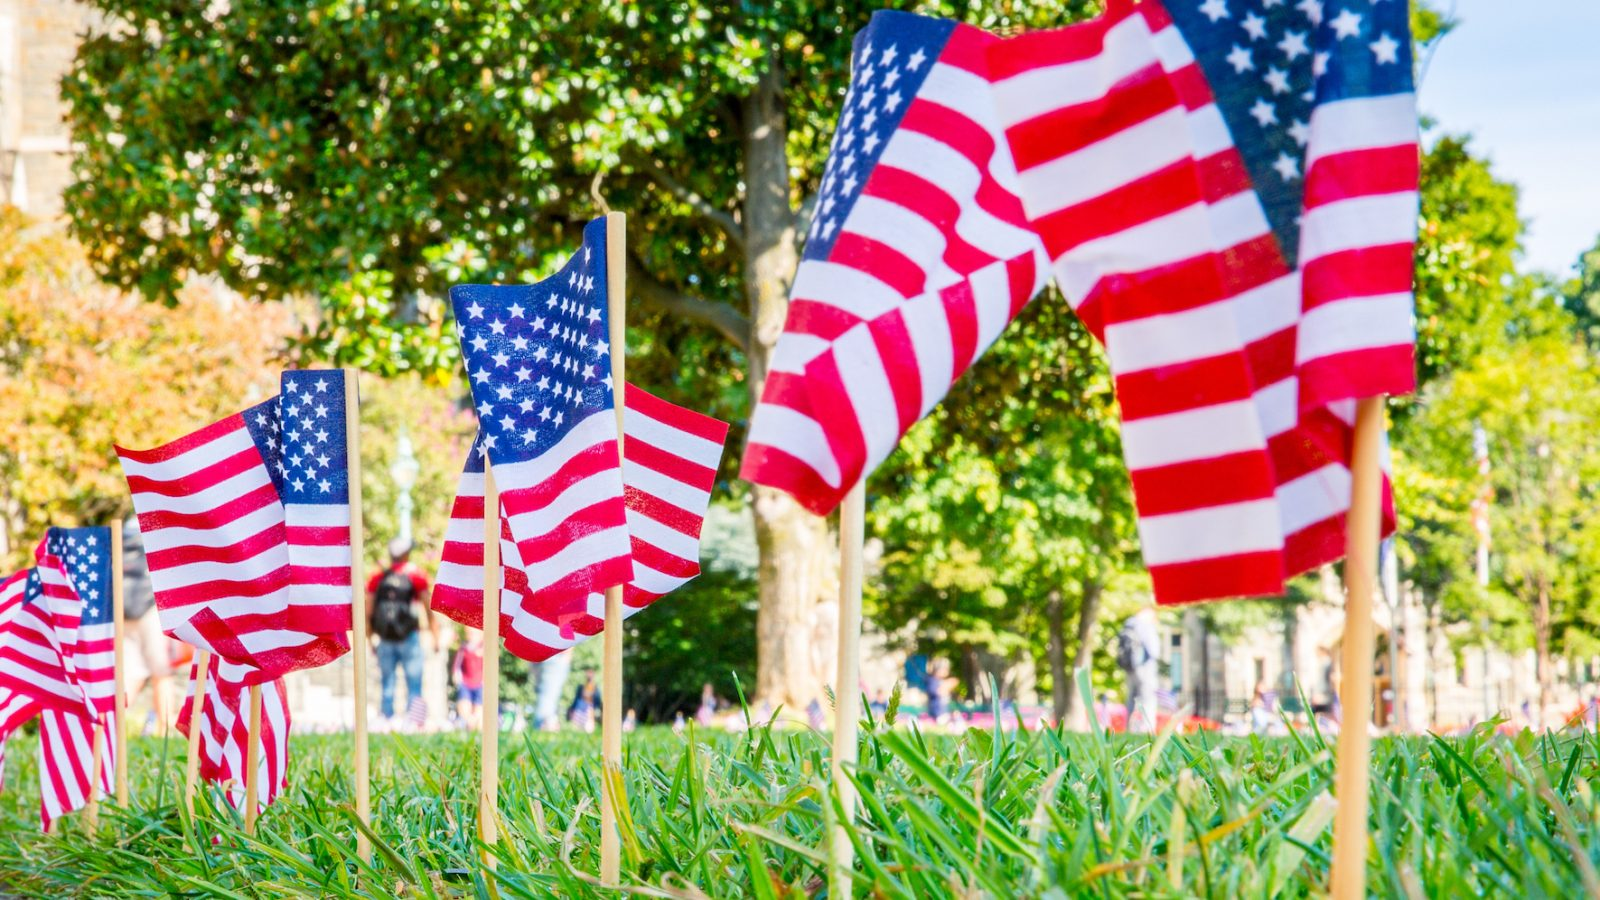 On the anniversary of 9/11 the campus is filled with American flags.